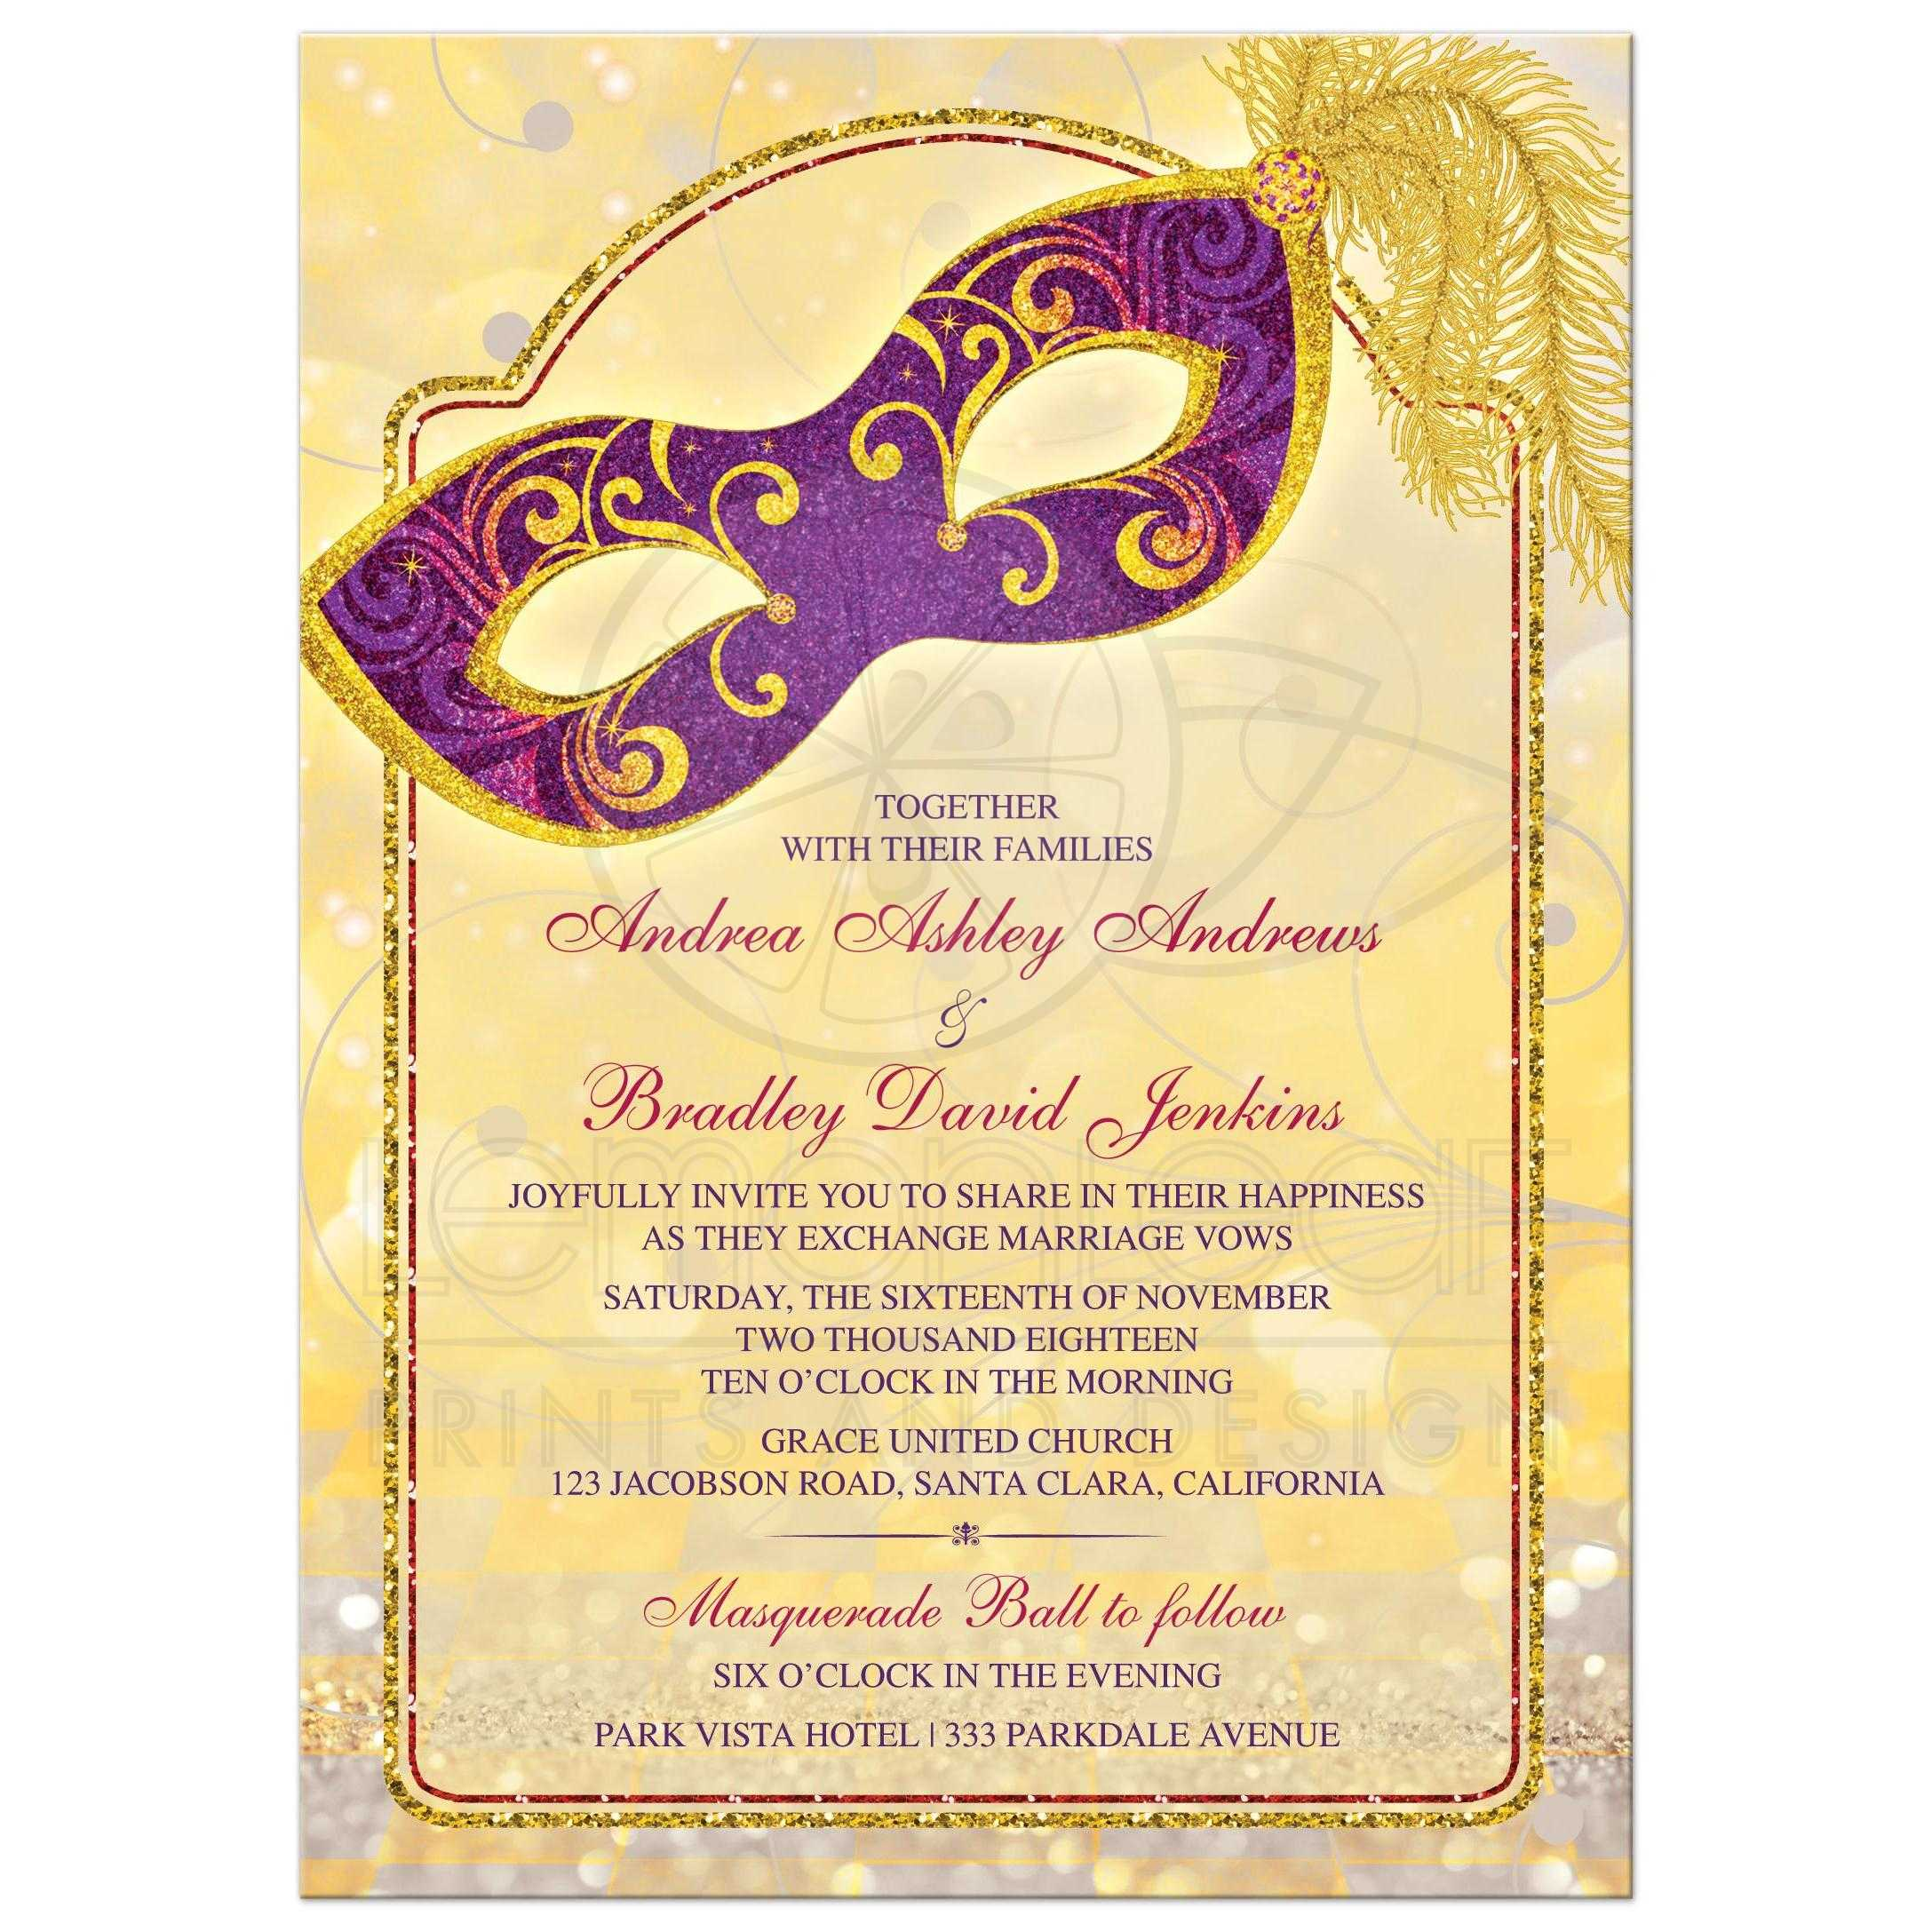 Magical Masquerade Ball Wedding Invitation In Gold Royal Purple And Red Front